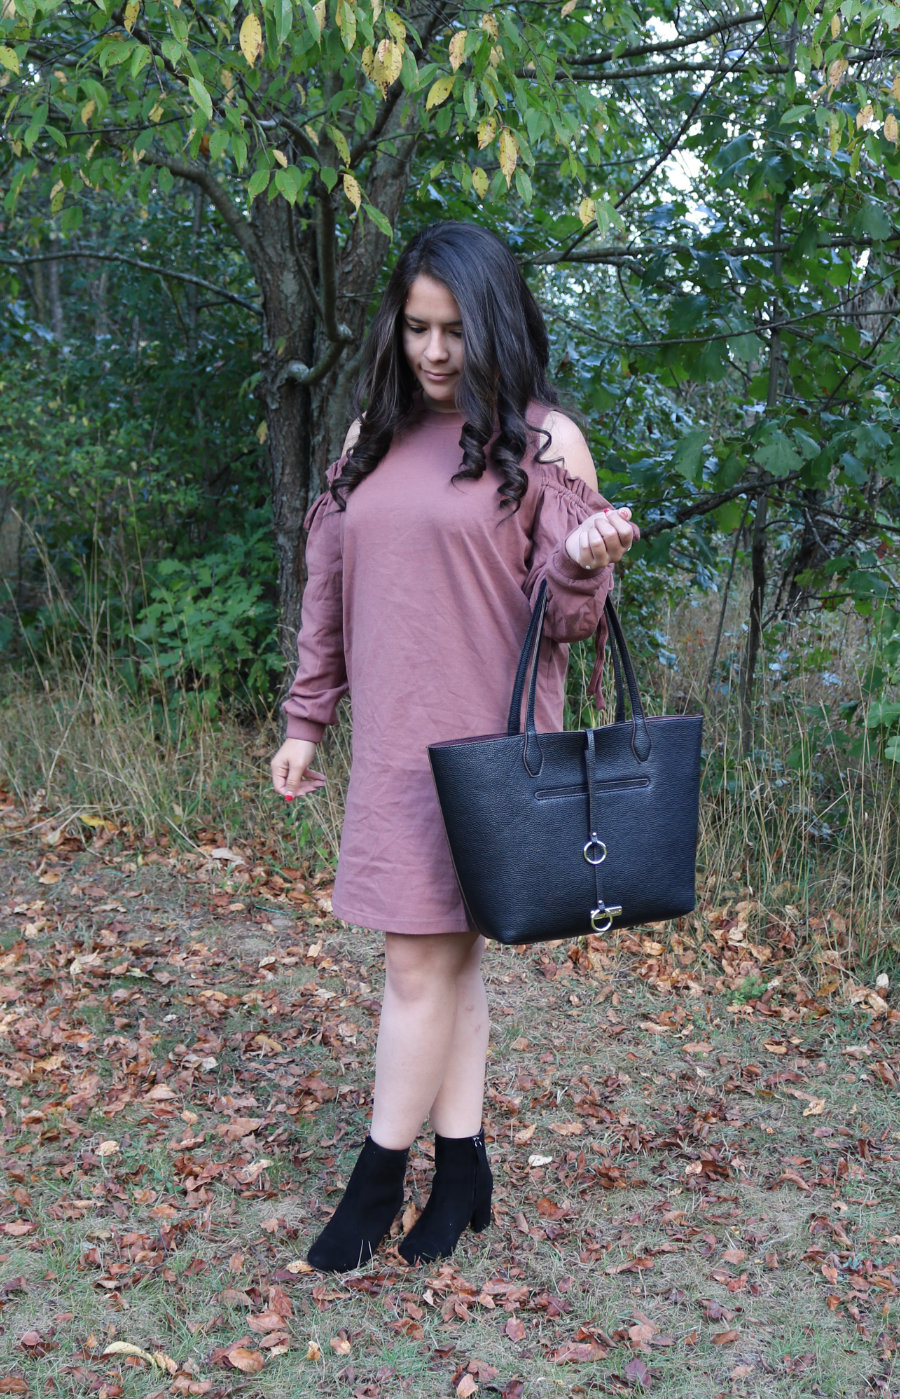 Halogen Cade Boots and Lush Cold Shoulder Ruffle Sweaterdress from Trunk Club Review #5